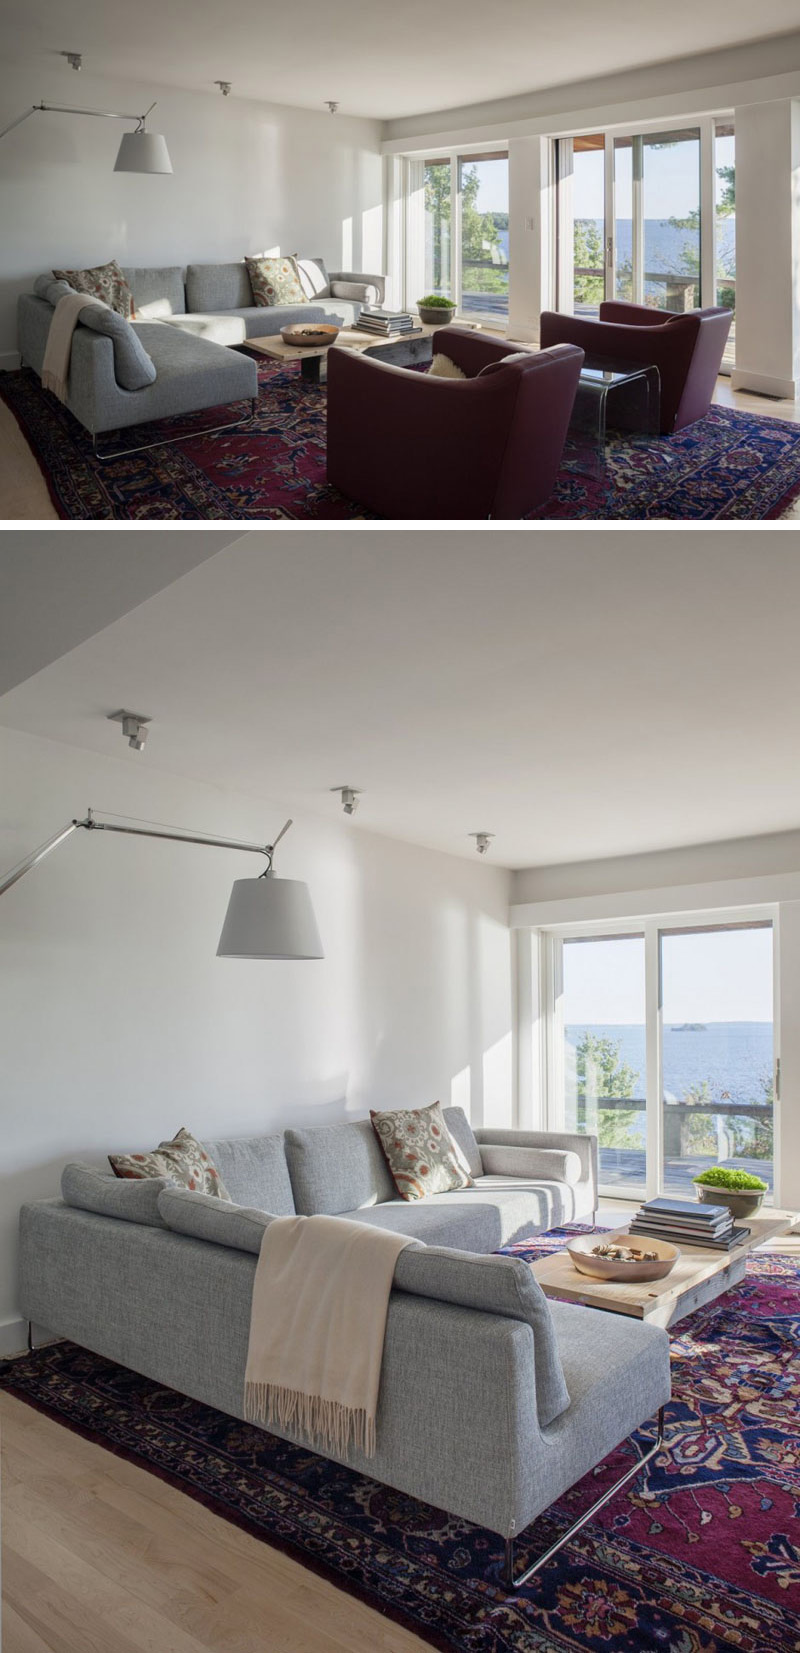 In this modern living room, a grey upholstered L-shape couch, and two red sofa chairs sit beside sliding glass doors that lead to the balcony. A large red Persian rug is placed on the wood floor to make the room a comfortable place to relax.